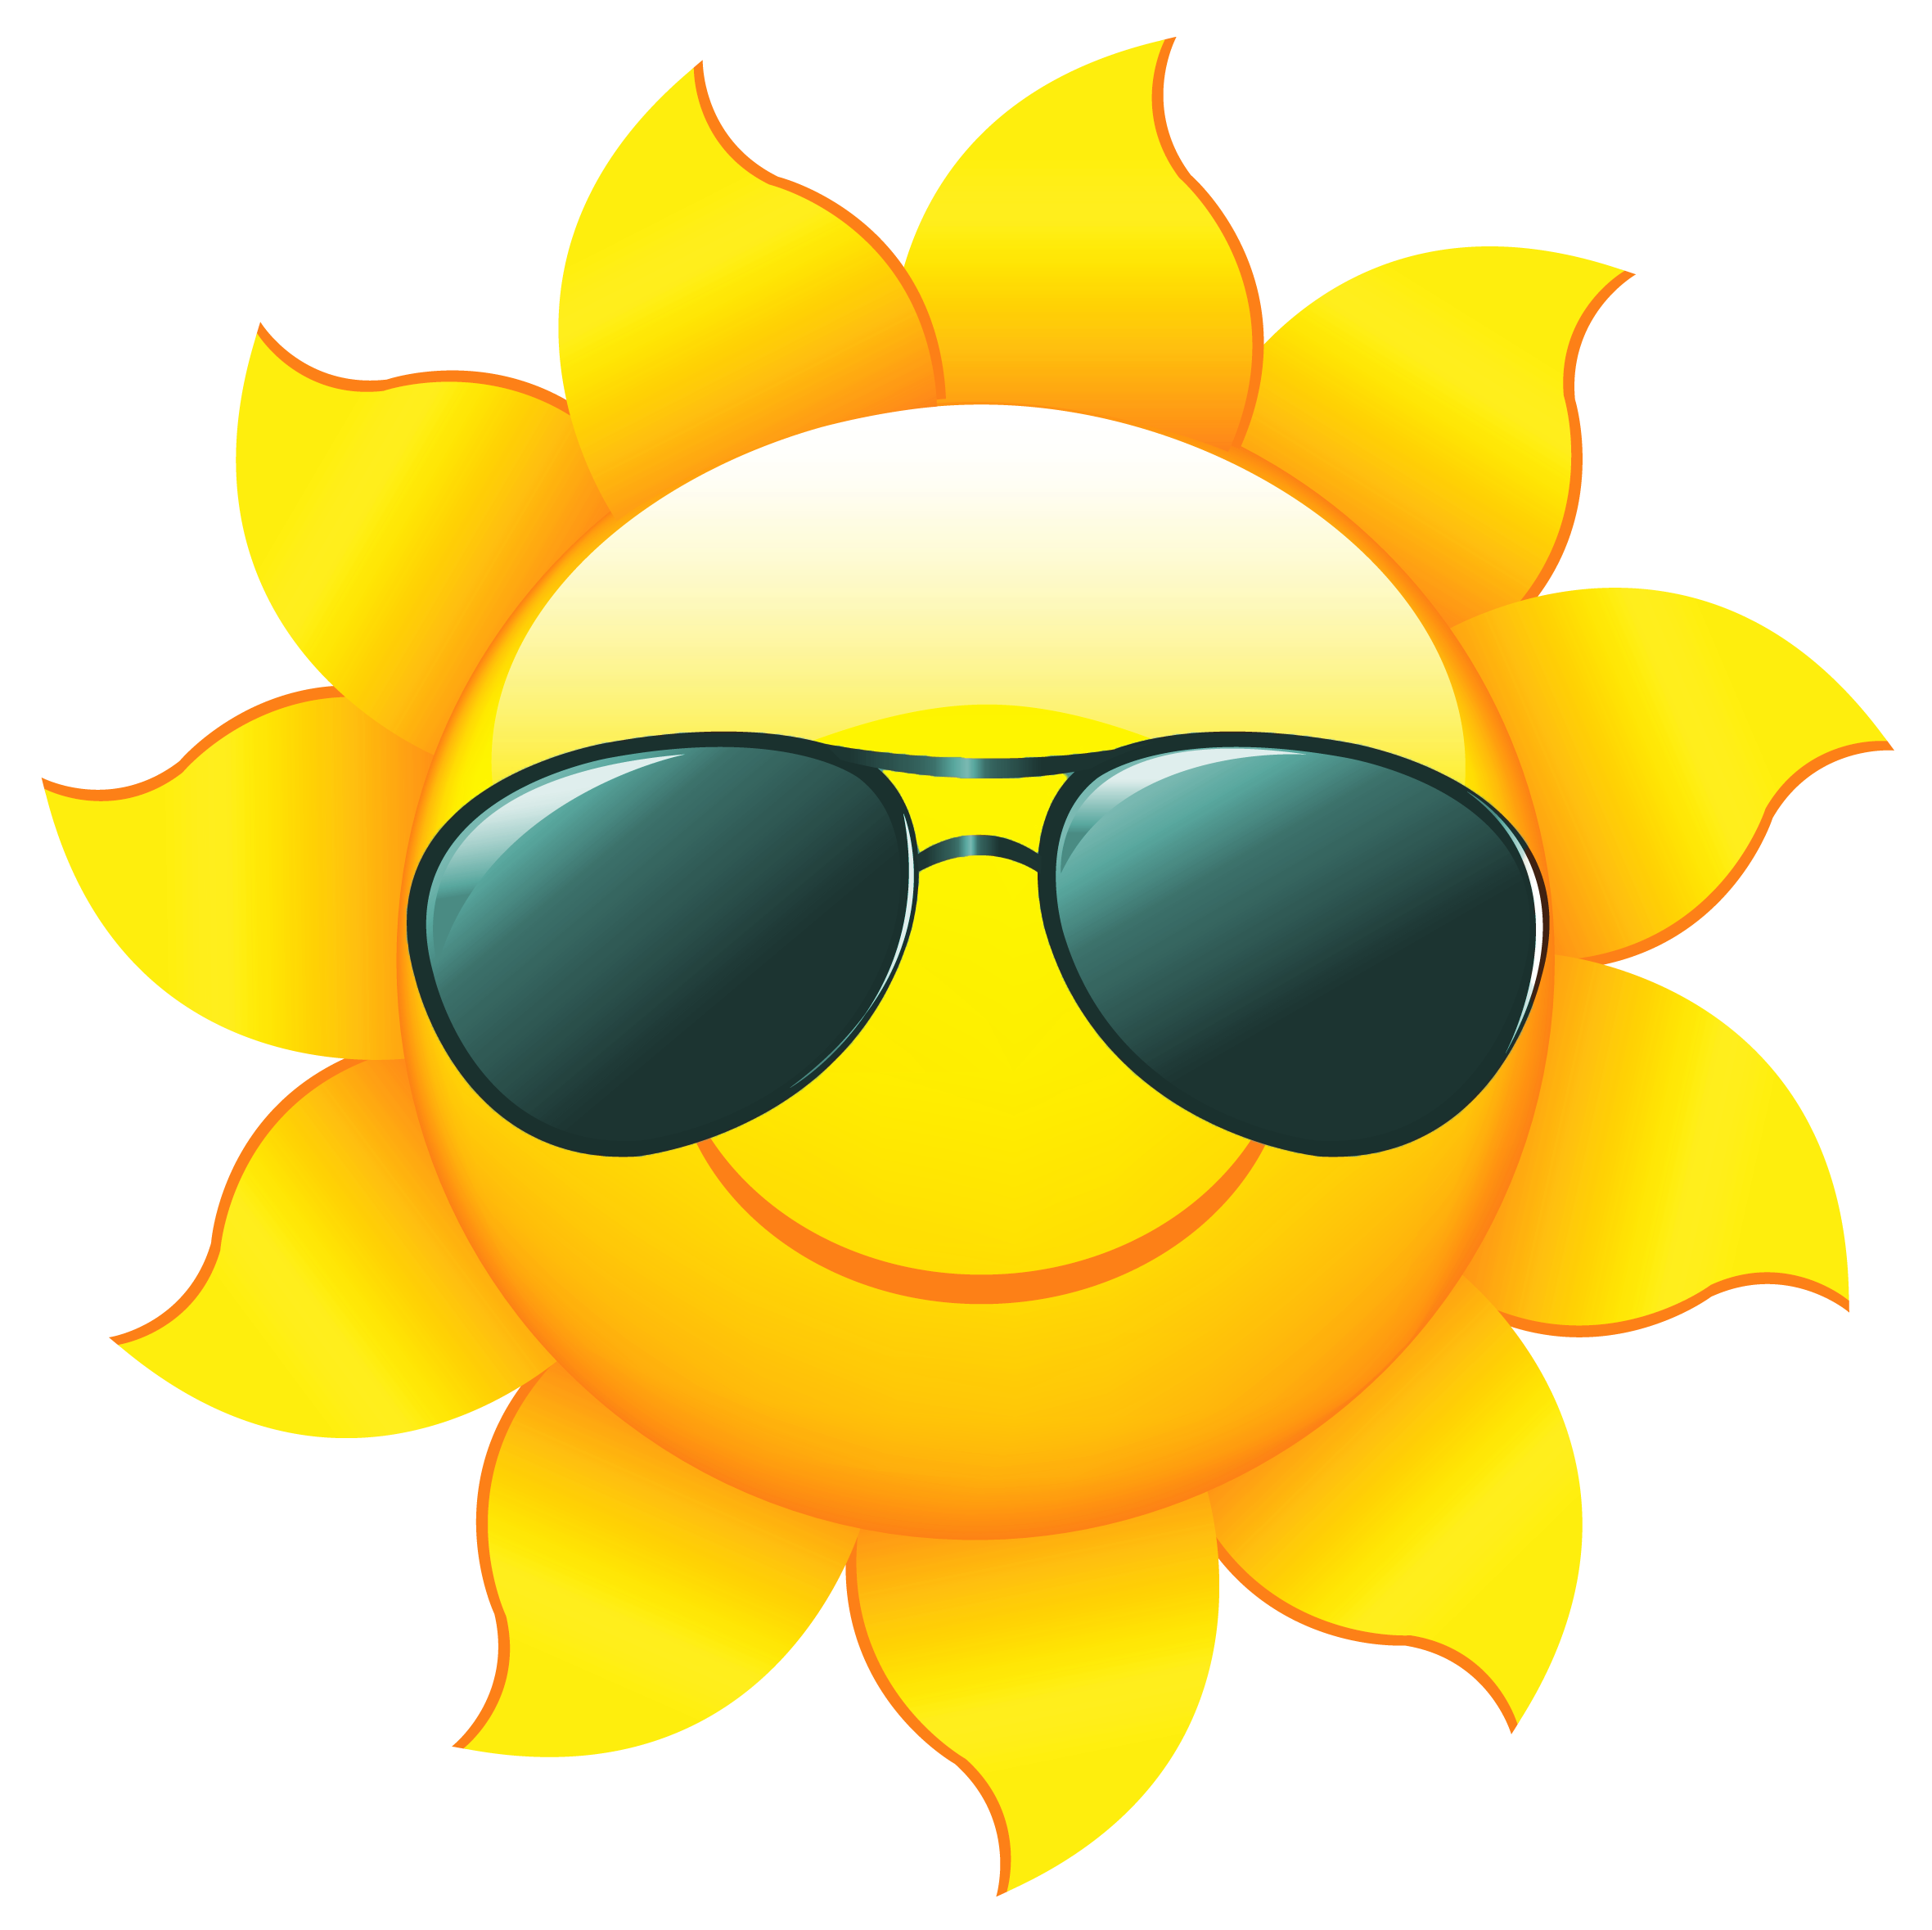 Clipart pictures sun image transparent library Community Events Calendar 6.30-7.6.2018 - Town of Bedford image transparent library